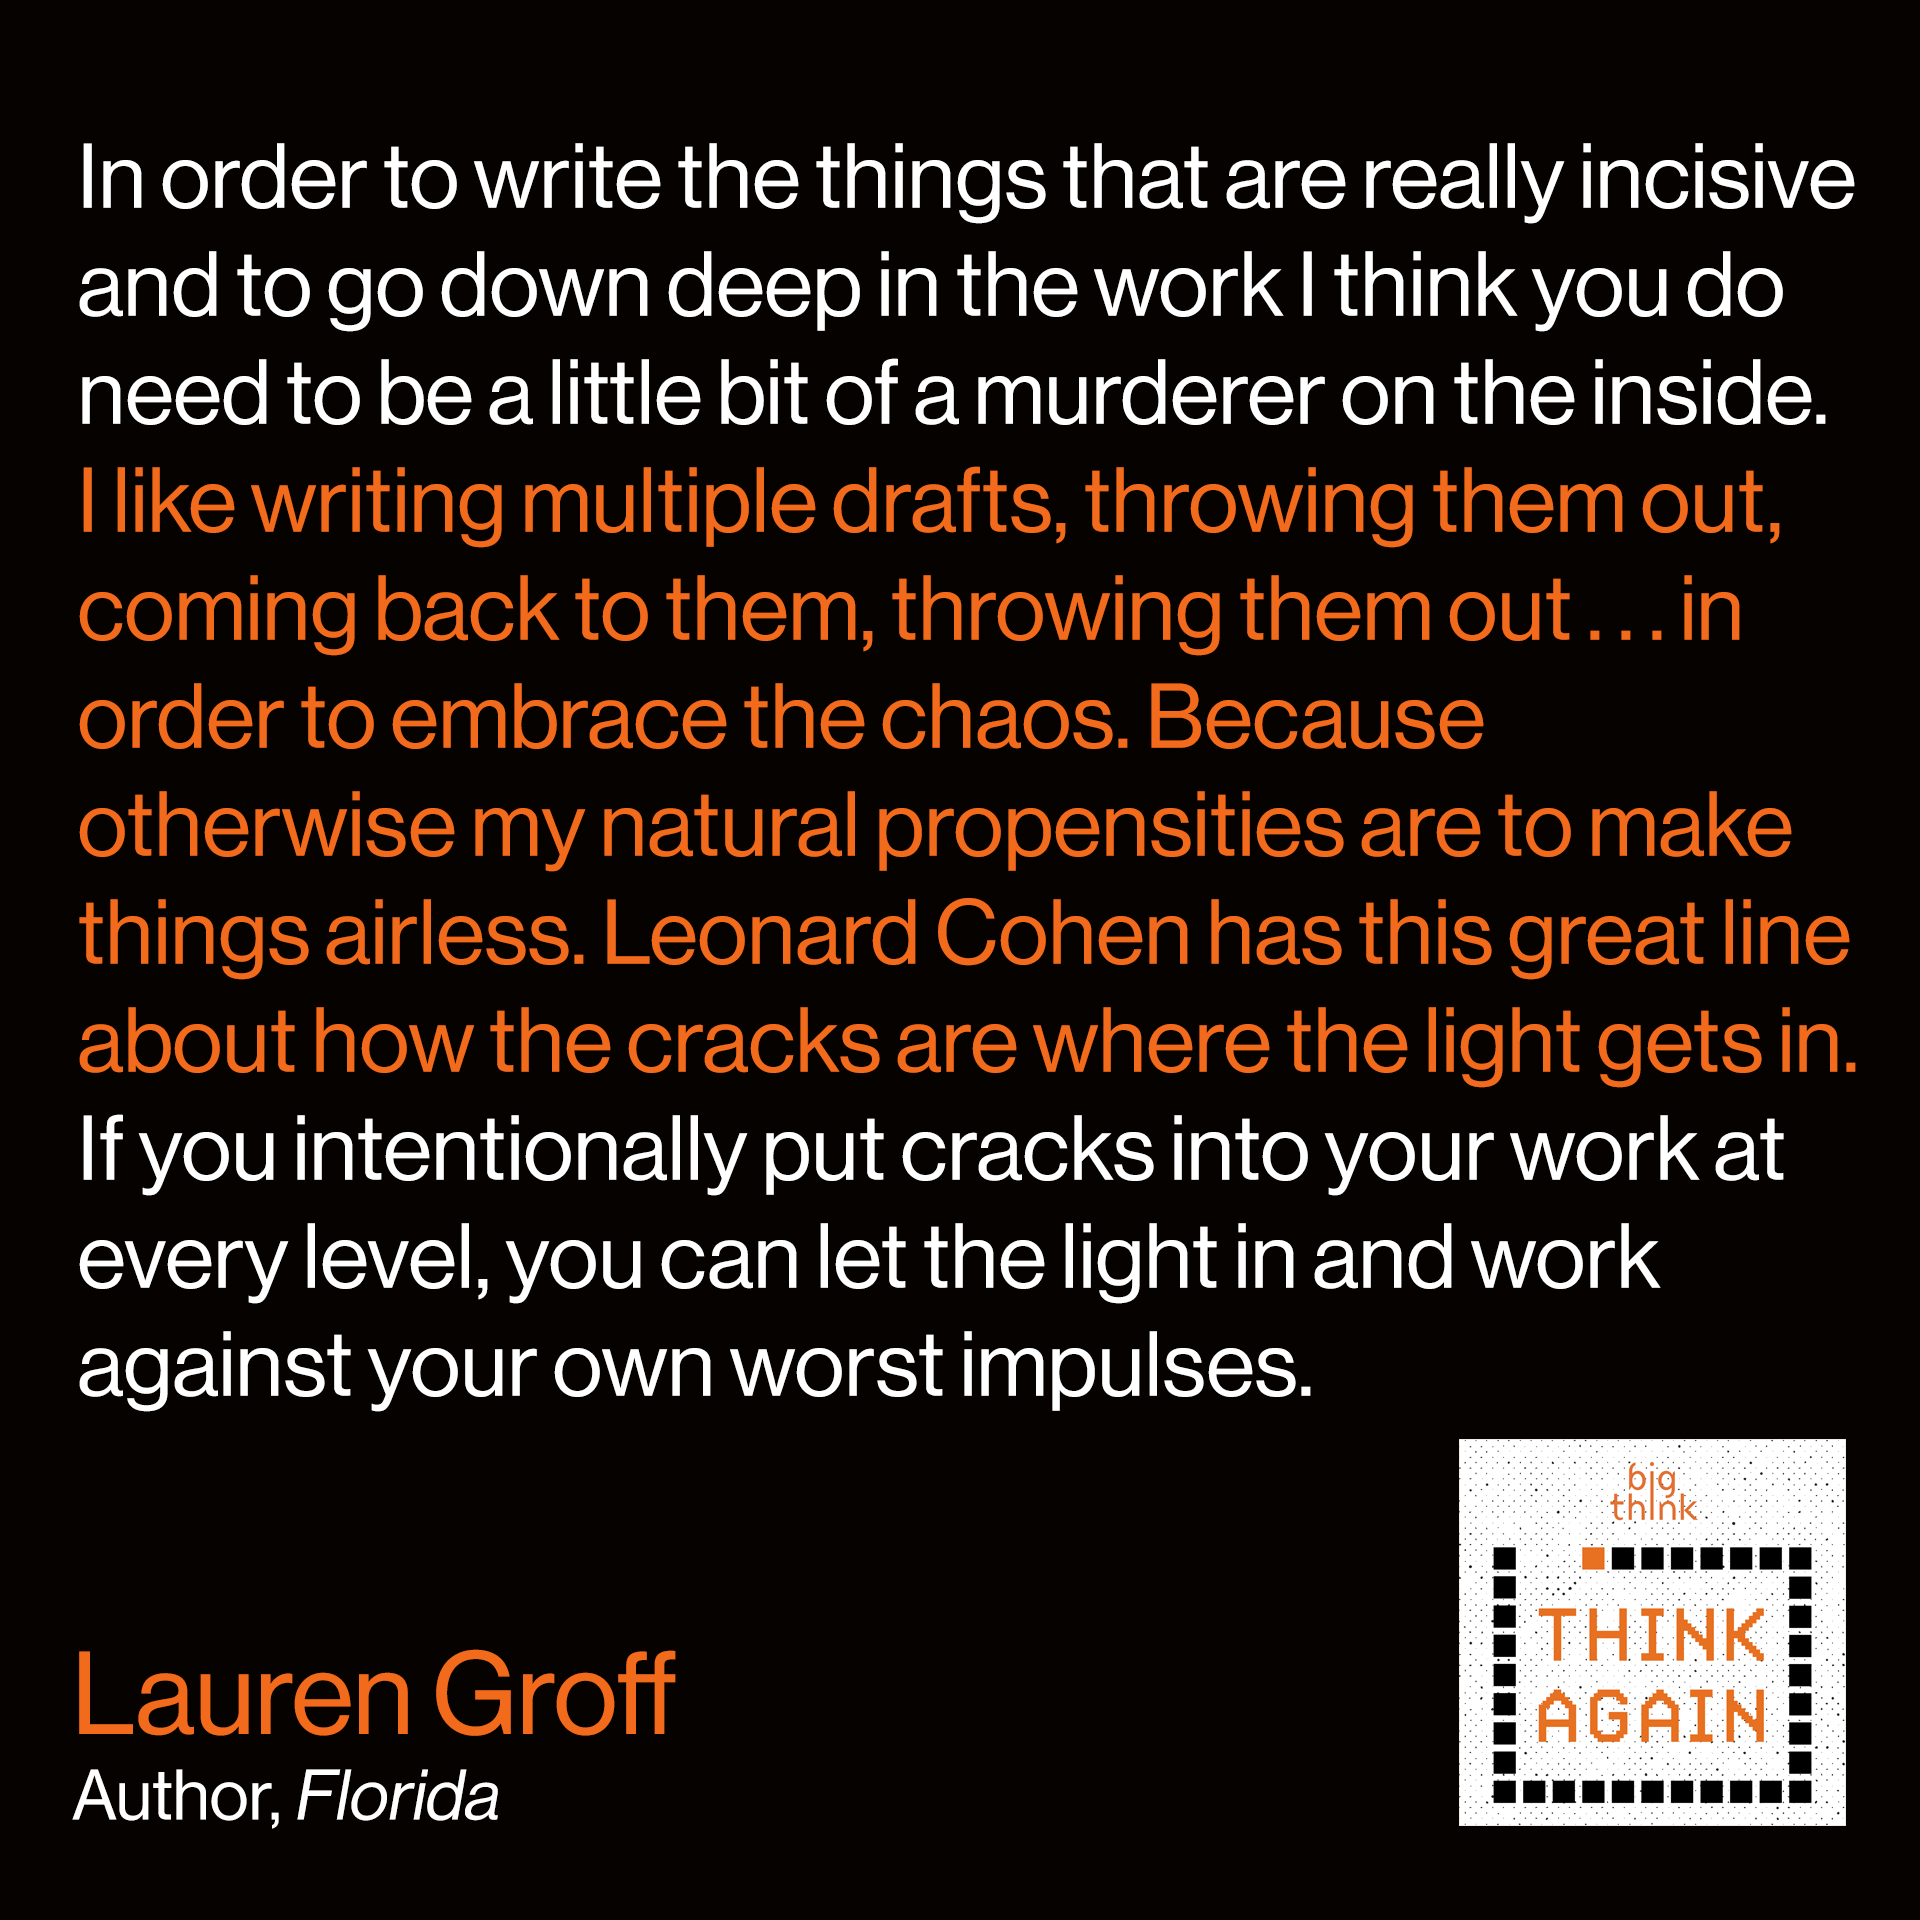 "Lauren Groff Quote: I think that most writers are profoundly good people. But in order to write the things that are really incisive and to go down deep in the work I think you do need to be a little bit of a murderer on the inside. You need to really not care about ramifications until the editing process. You have to throw everything in, be as risky as possible, do everything that you possibly can to hit that ideal that you have in your head. I like writing multiple drafts, throwing them out, coming back to them, throwing them out—in order to embrace the chaos. Because otherwise my natural propensities are to make things airless. To make things perfect in the beginning and not allow . . . Leonard Cohen has this great line ""the cracks are the way the light gets in."" So if you intentionally put cracks into your work at every level then you can let the light in and work against your worst impulses."